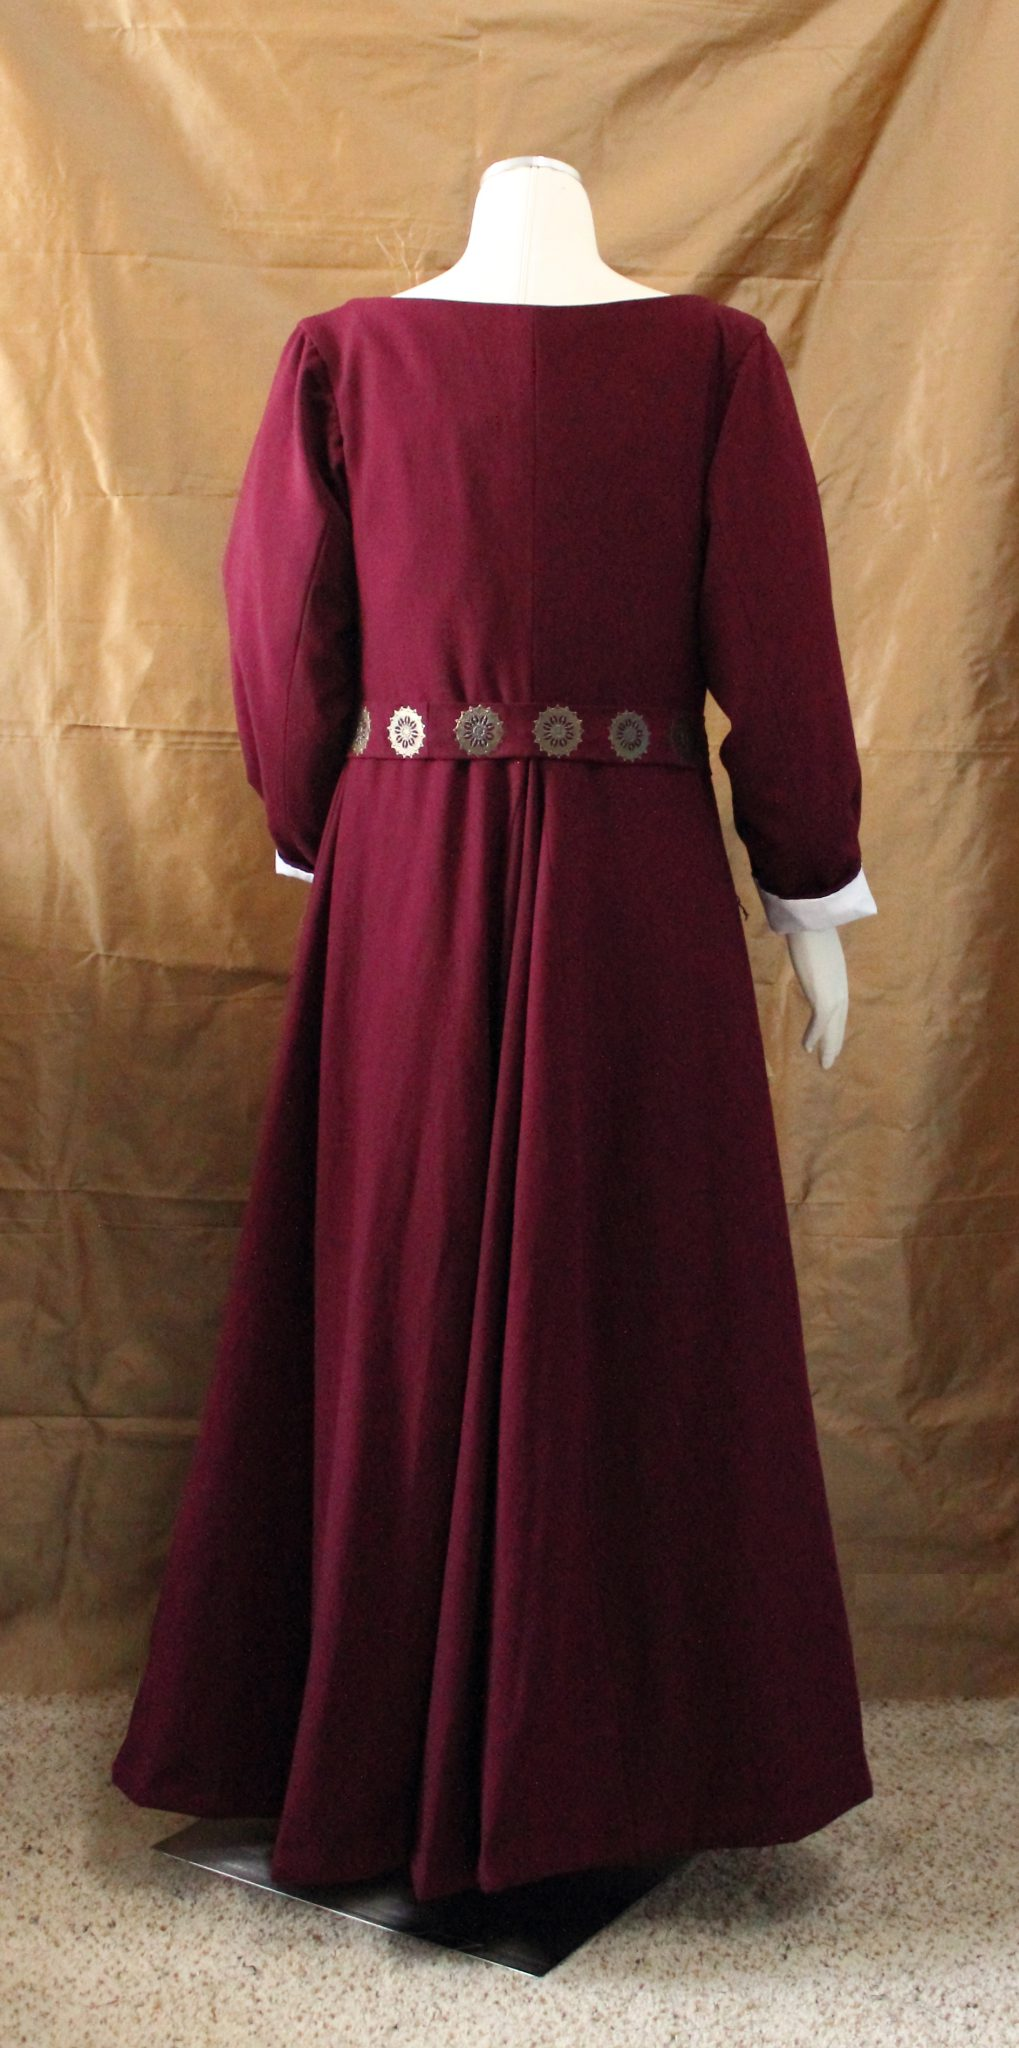 A 14th Century Kirtle or a Fantasy Gown Depending on the